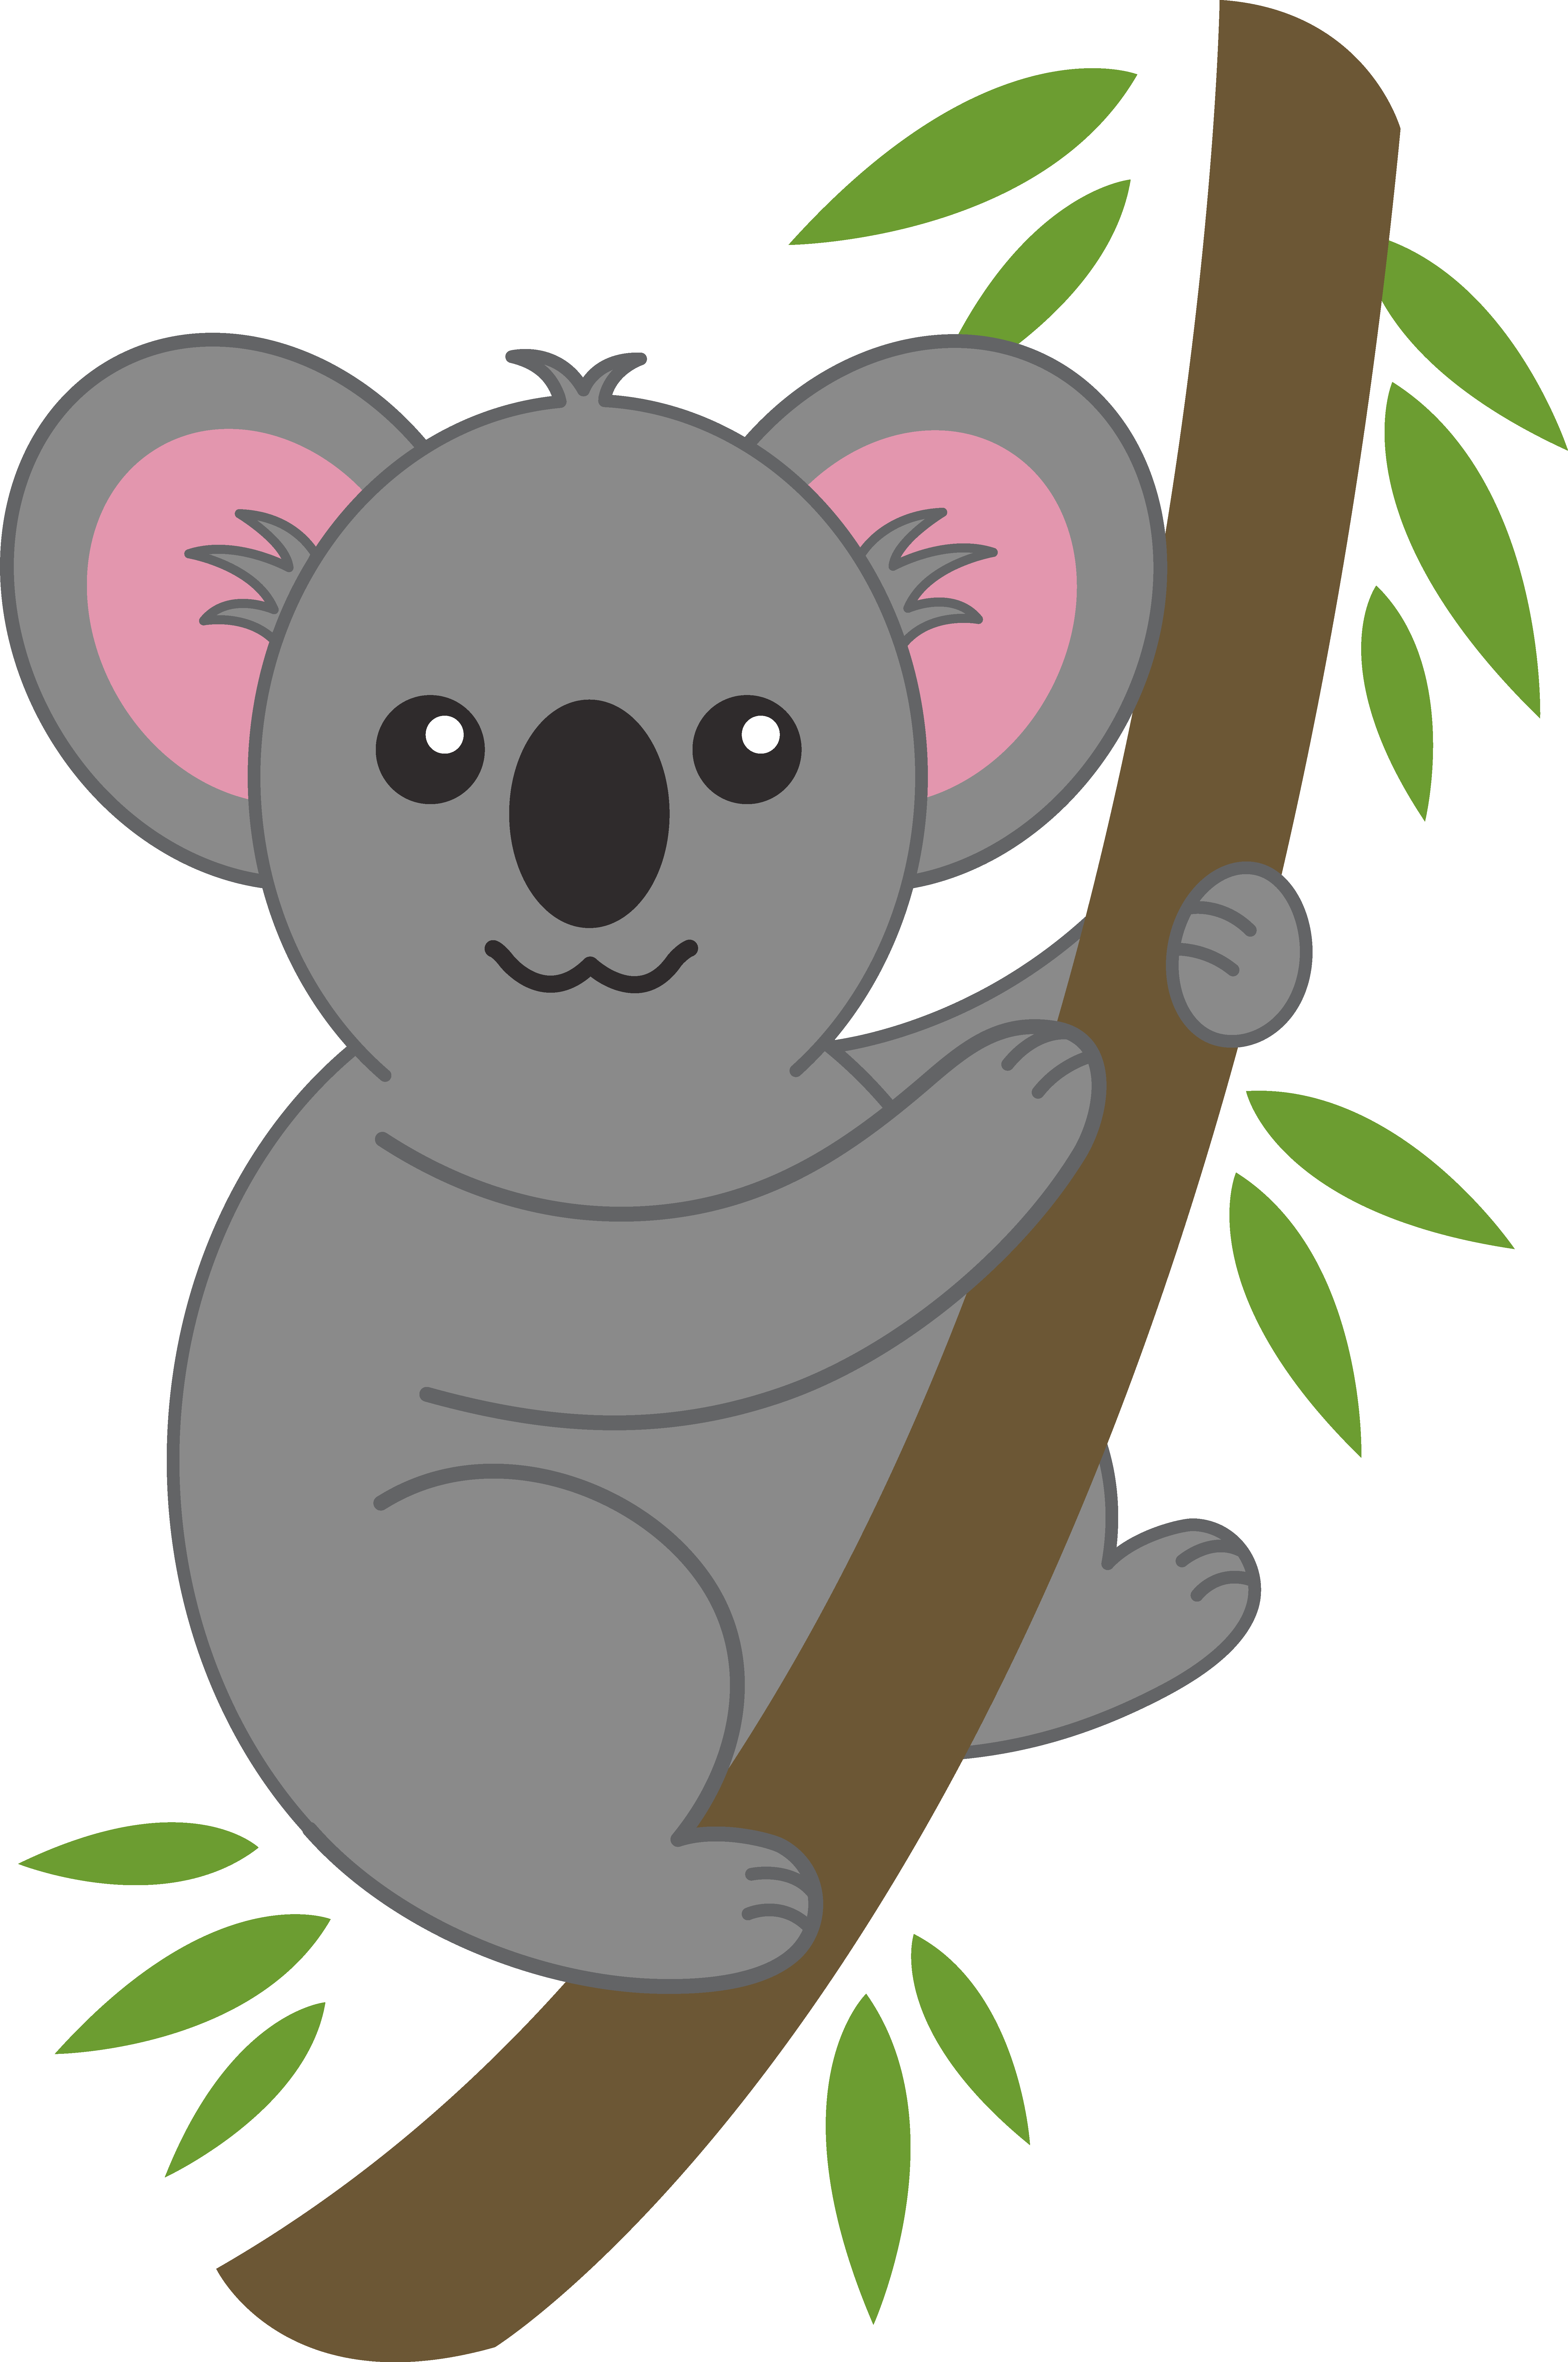 Koala clipart easy. Animal